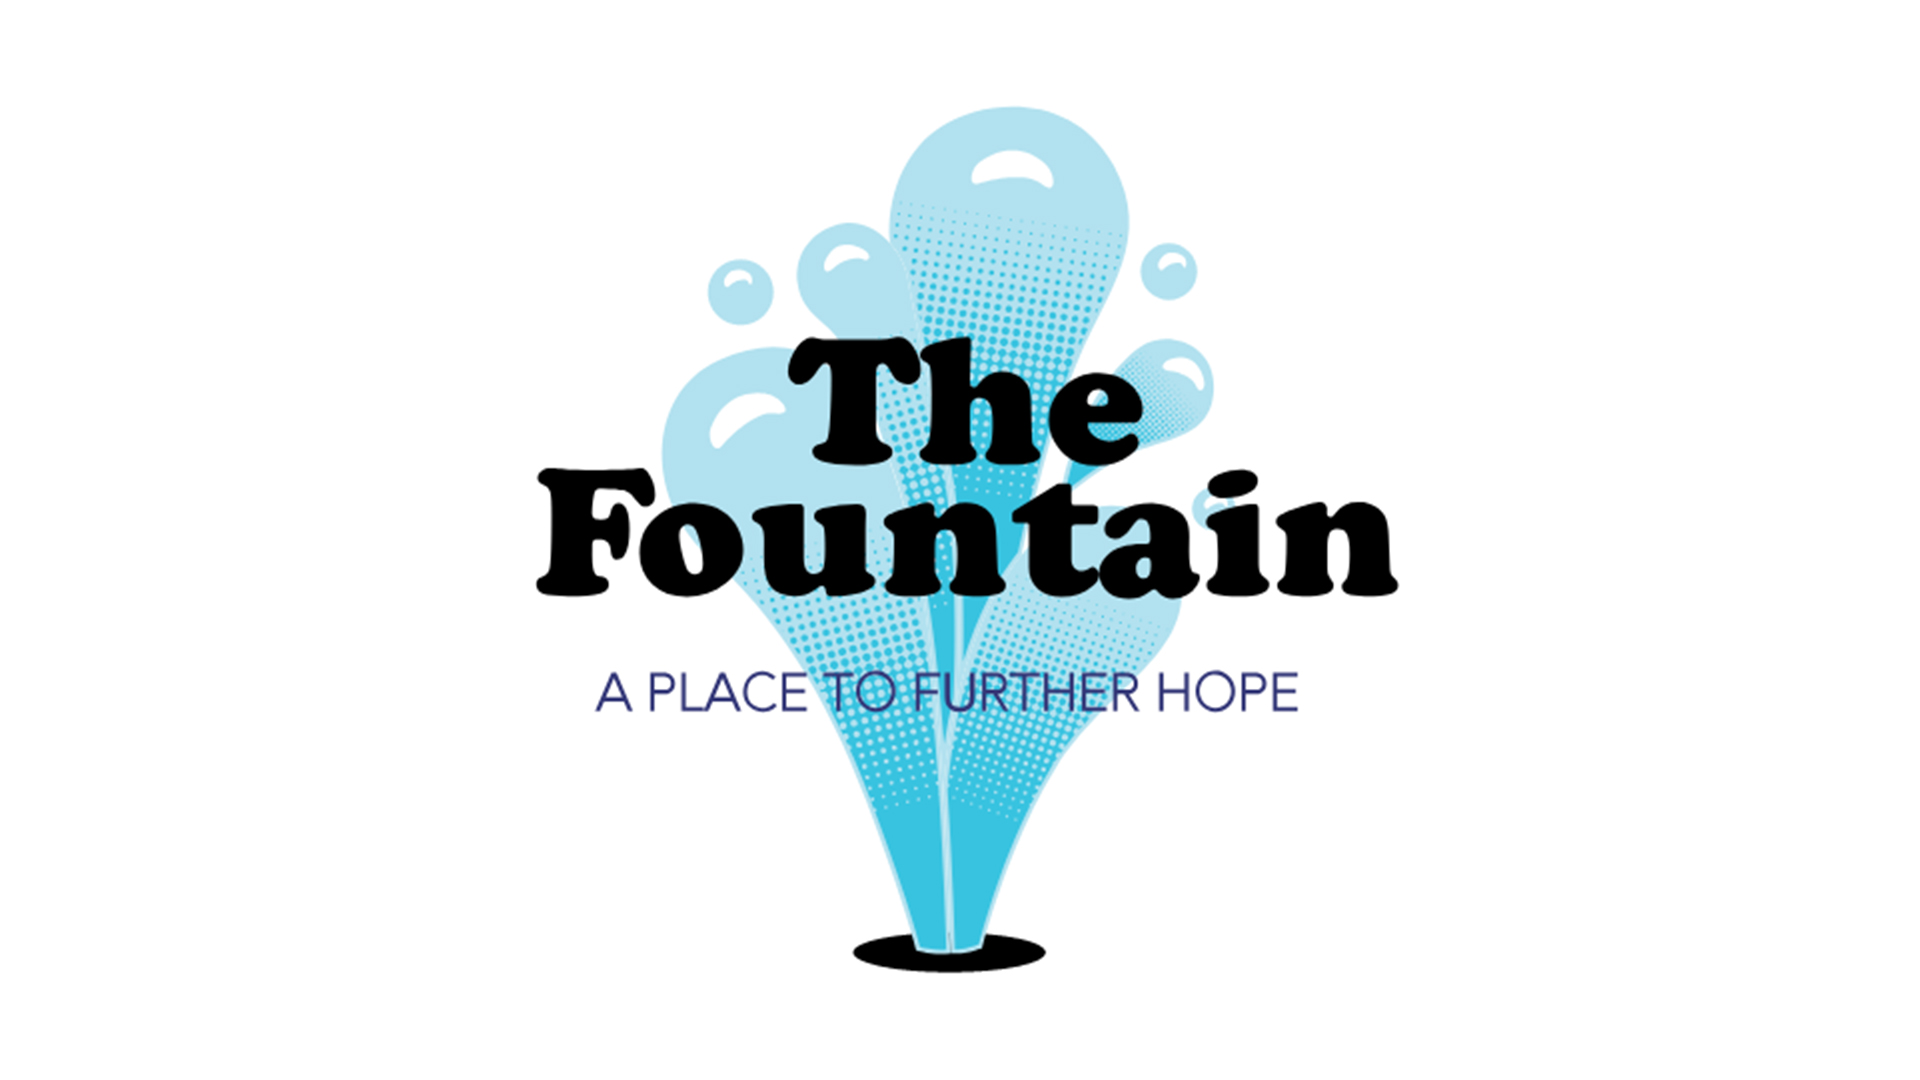 The Fountain - 3rd Saturday of every month